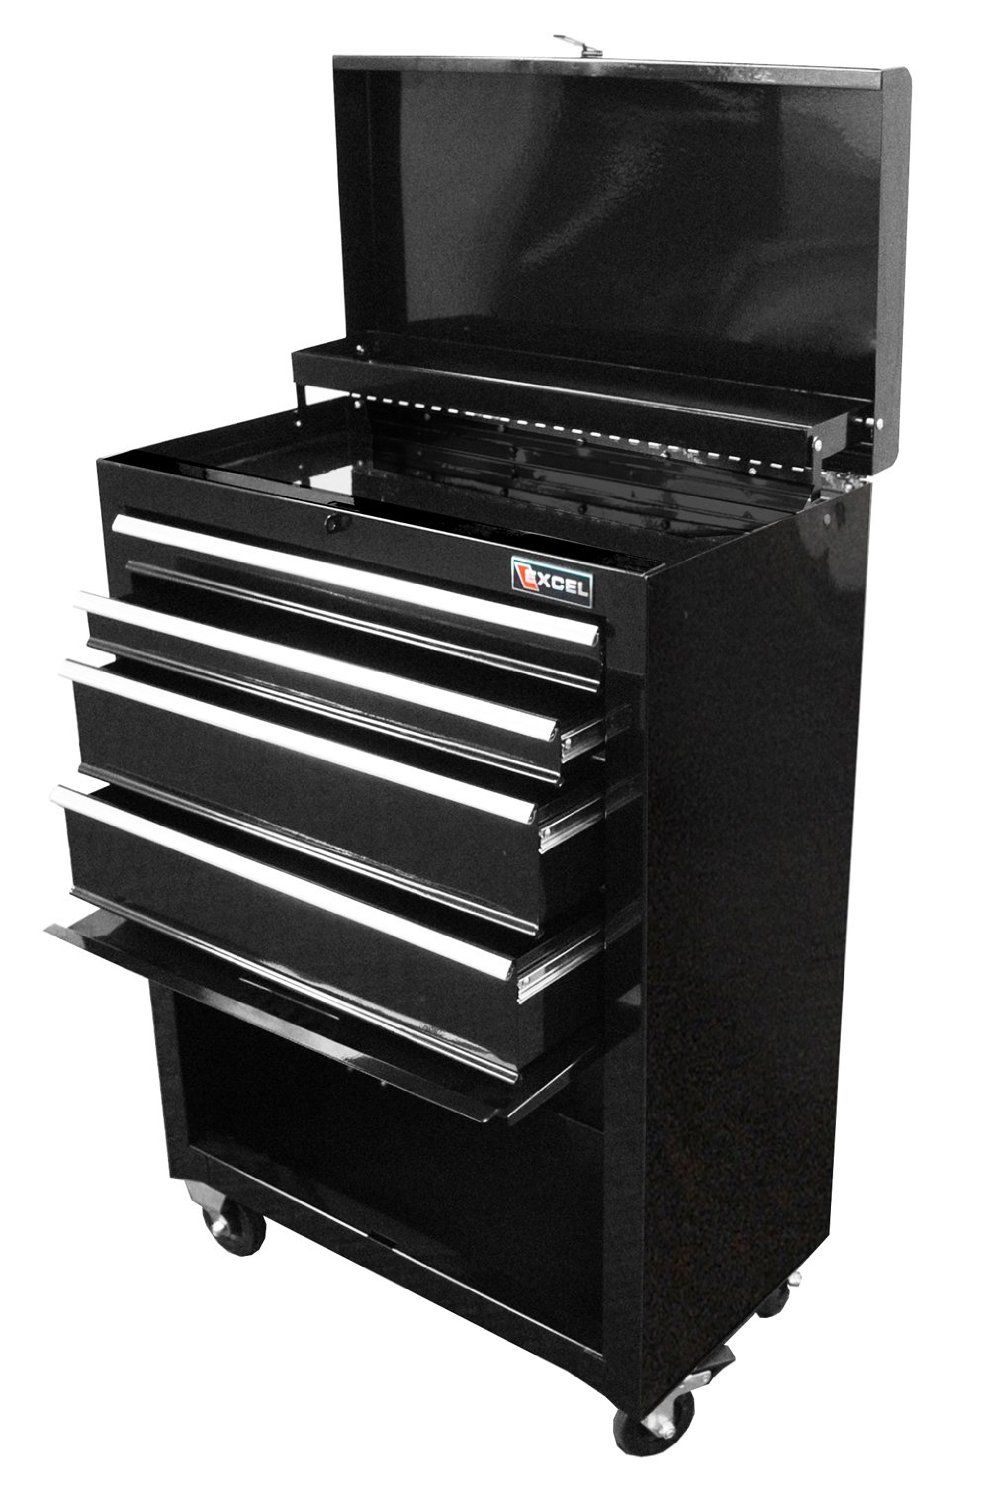 Excel Tb2201x Black 22 Inch Steel Chest Roller Cabinet Combination Black Tool Chests Amazon Com Tool Box Storage Tool Box Cabinet Tool Storage